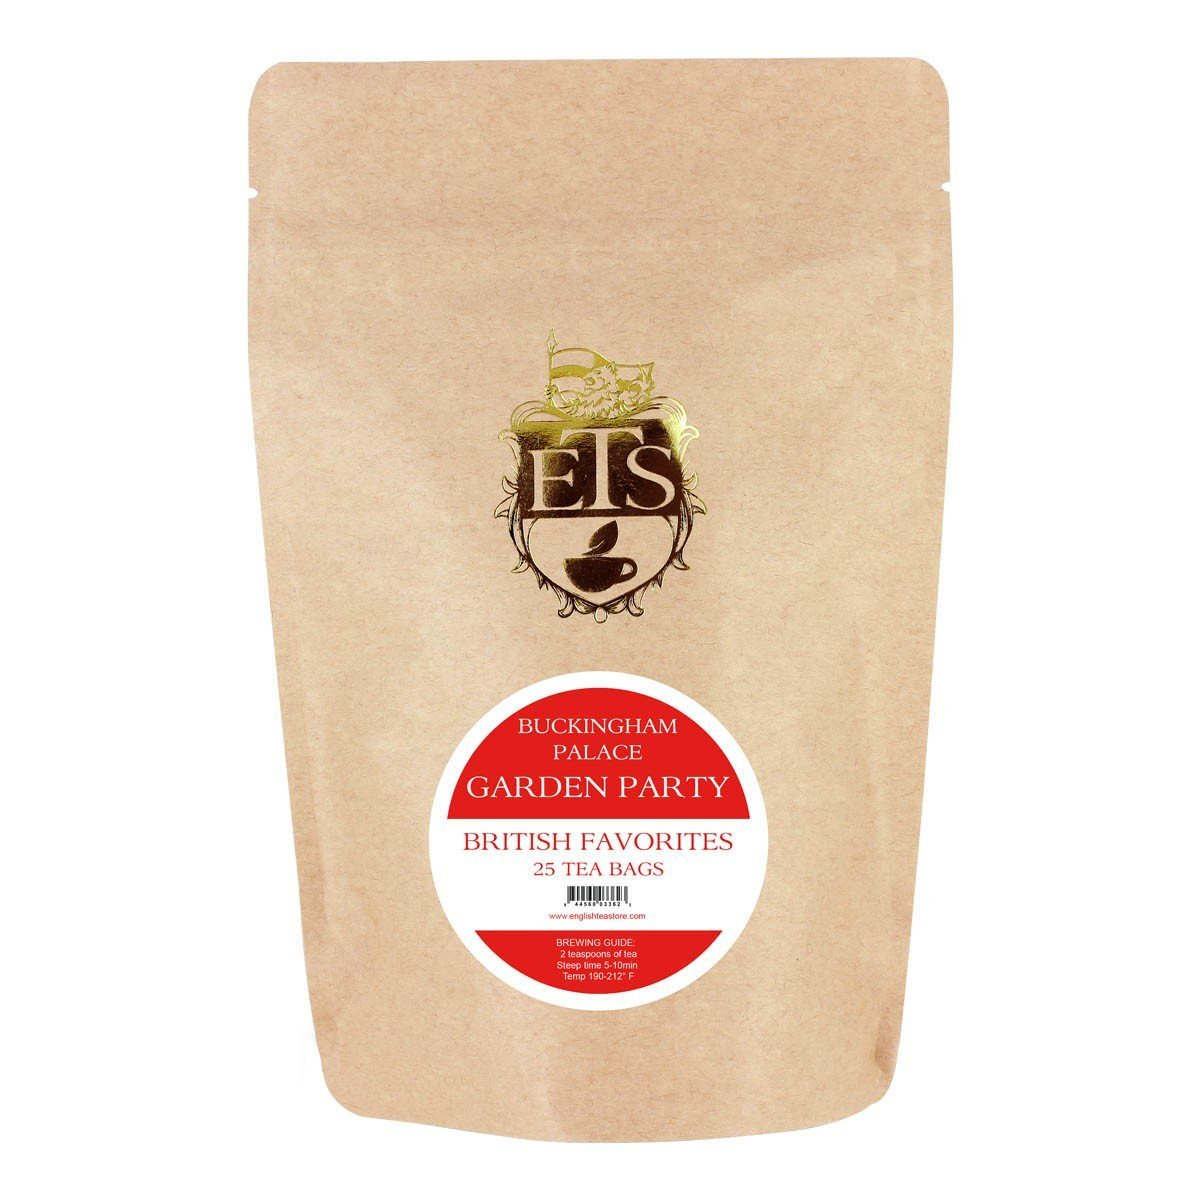 Buckingham Palace Garden Party Tea Bags - 25 Teabag Pouch